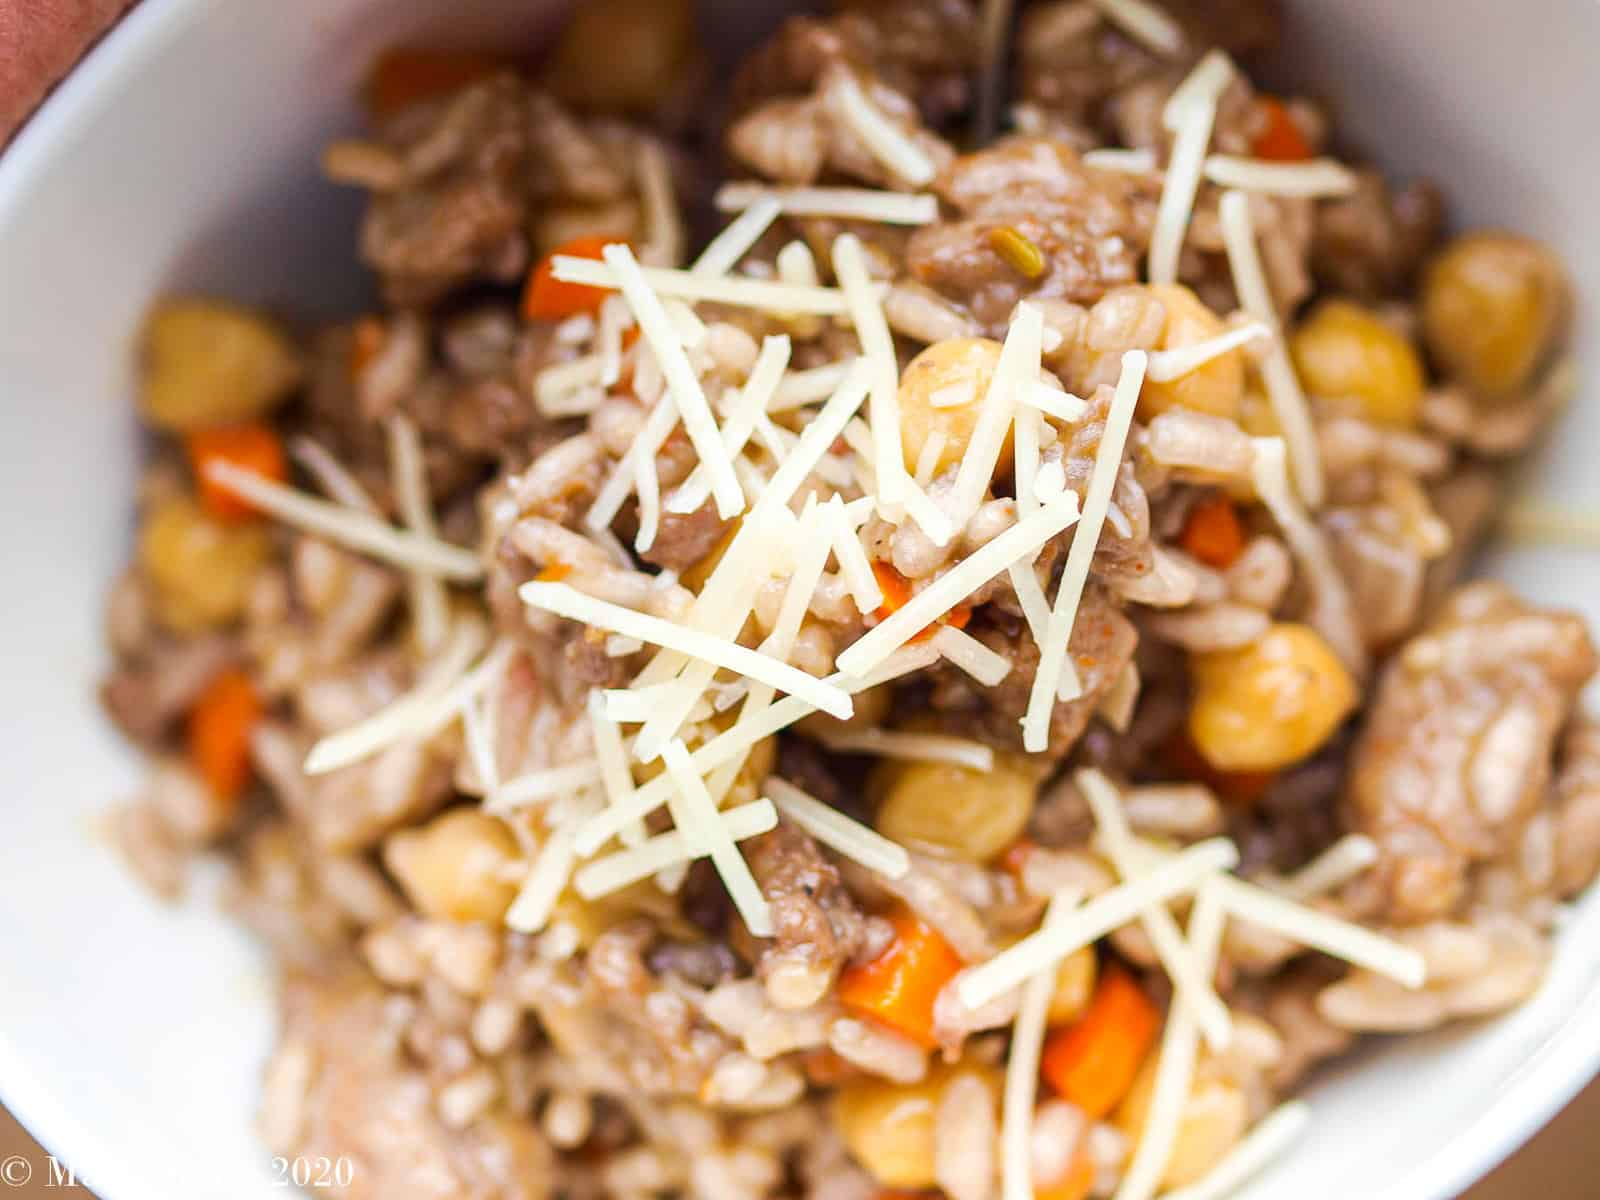 An up-close overhead shot of a bowl of sausage risotto